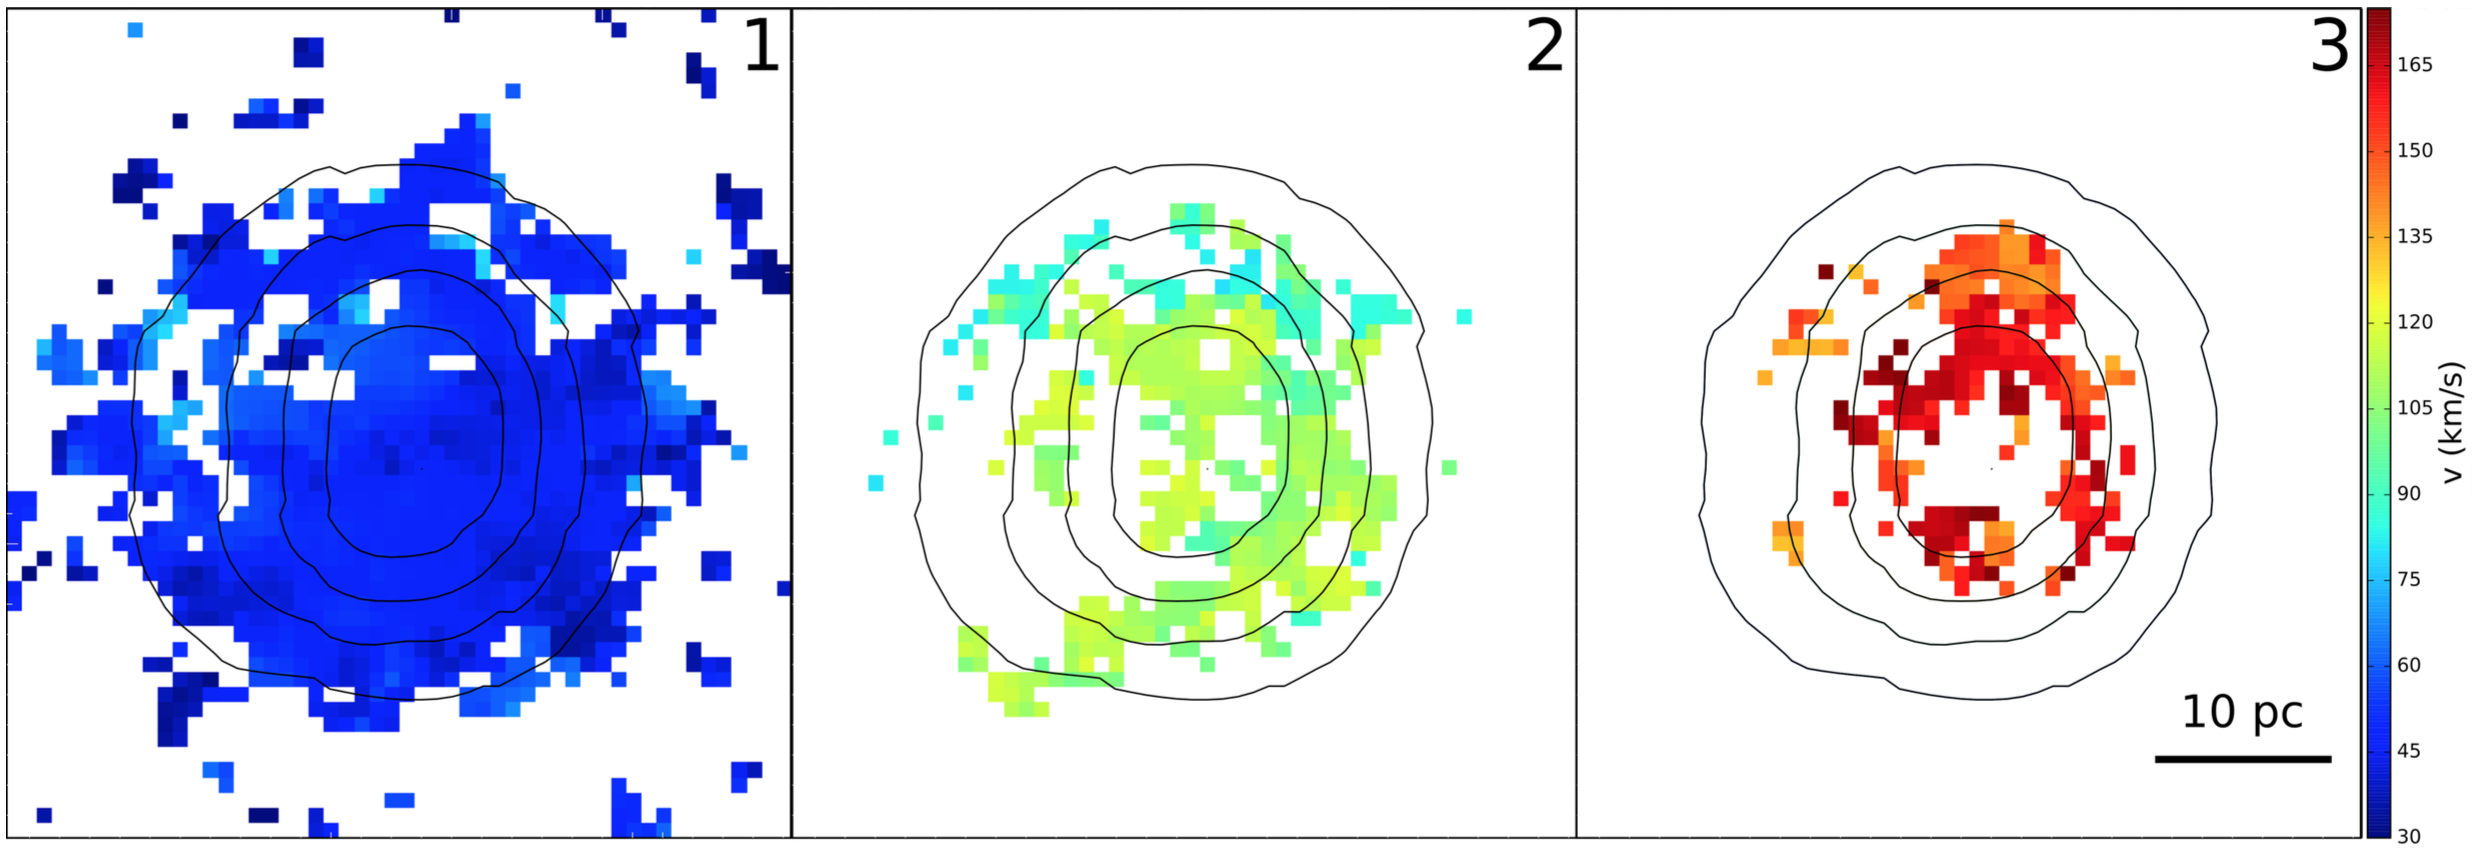 Figure 2. Maps of the three expanding bubbles detected towards the star cluster, corresponding to the three pairs of peaks in the spectrum in Figure 1. Each pixel is color coded by the bubble's expansion velocity at that location. The expansion velocity of the bubbles decreases as size increases, just as a bubble should slow as it expands into surrounding gas. Contours outline where H-alpha emission has constant brightness, increasing to smaller contours.